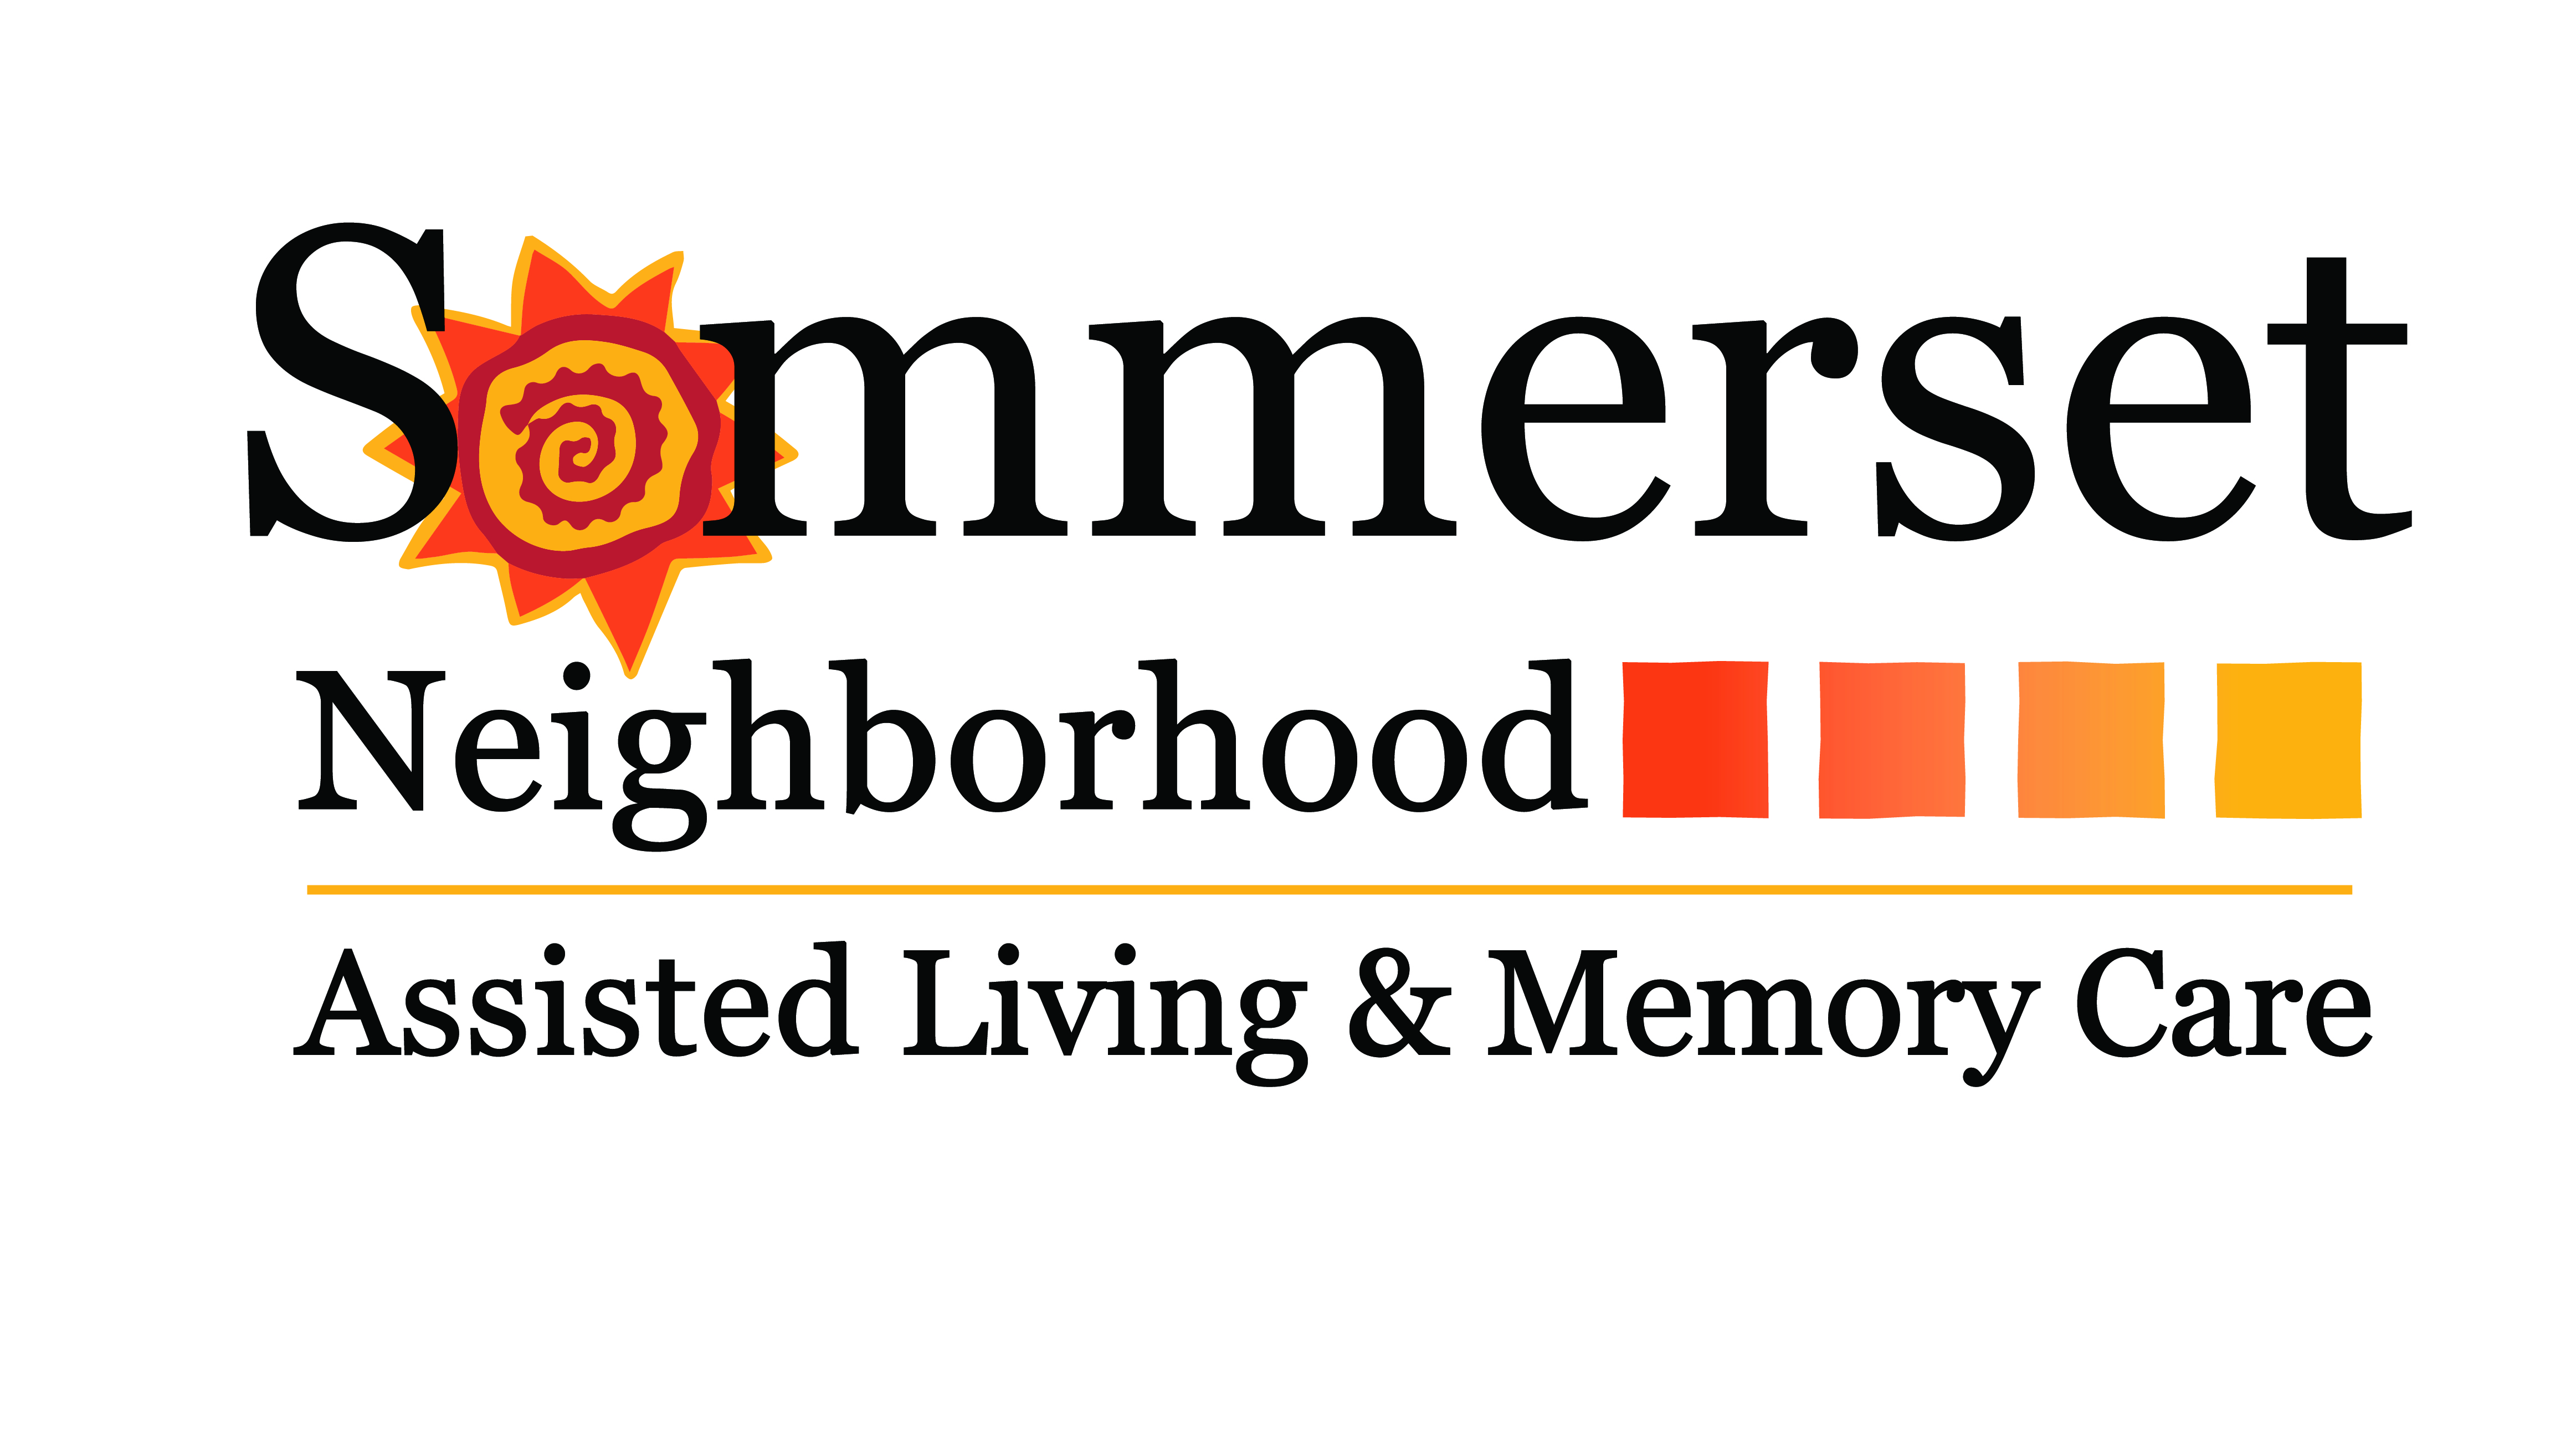 540. Sommerset Neighborhood (Silver)